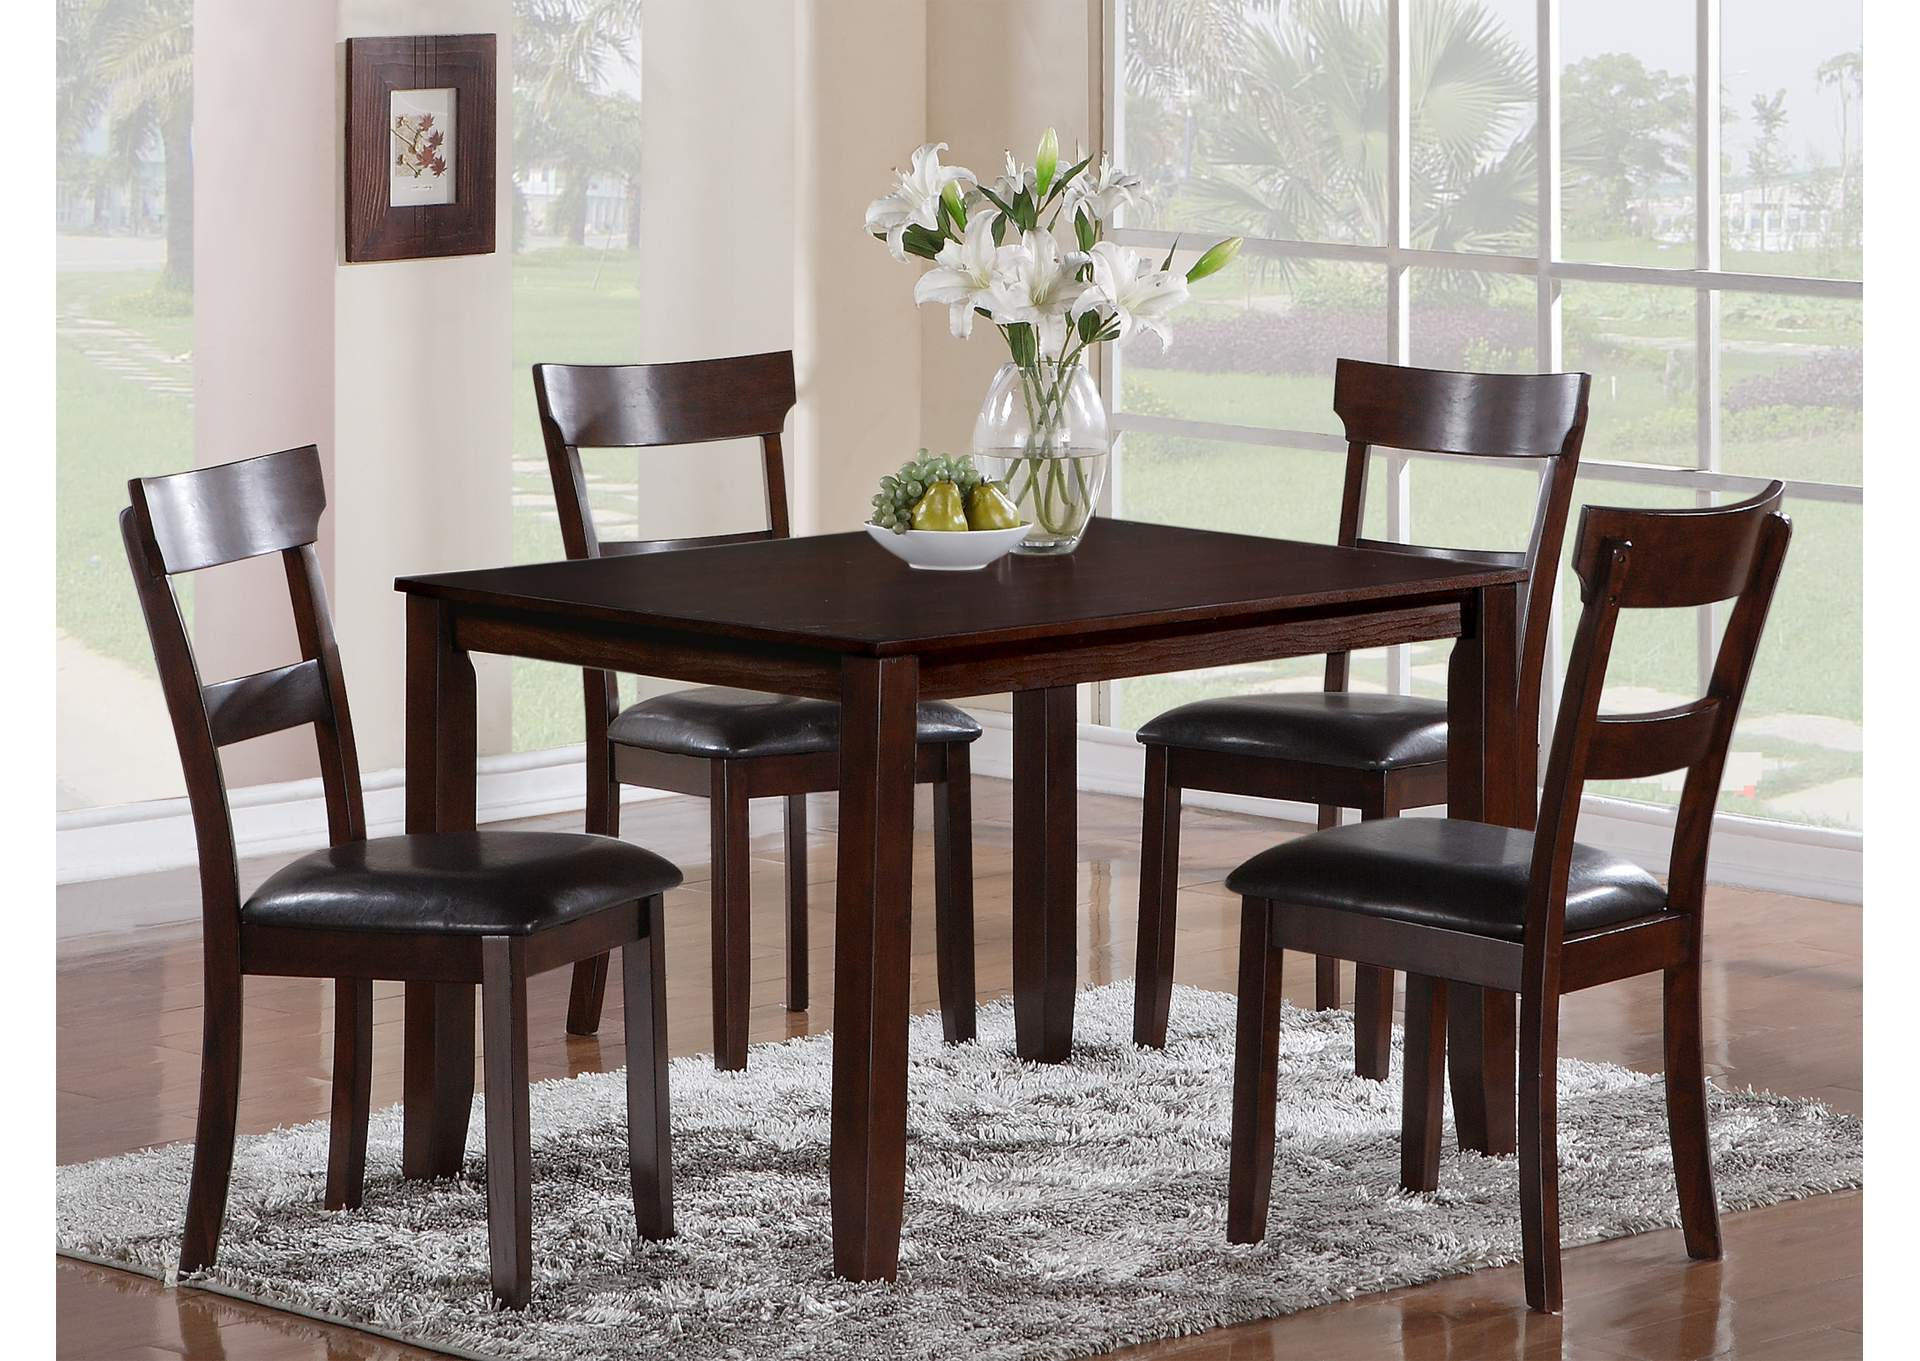 Henderson Brown Dinette W/ 4 Chairs,Crown Mark